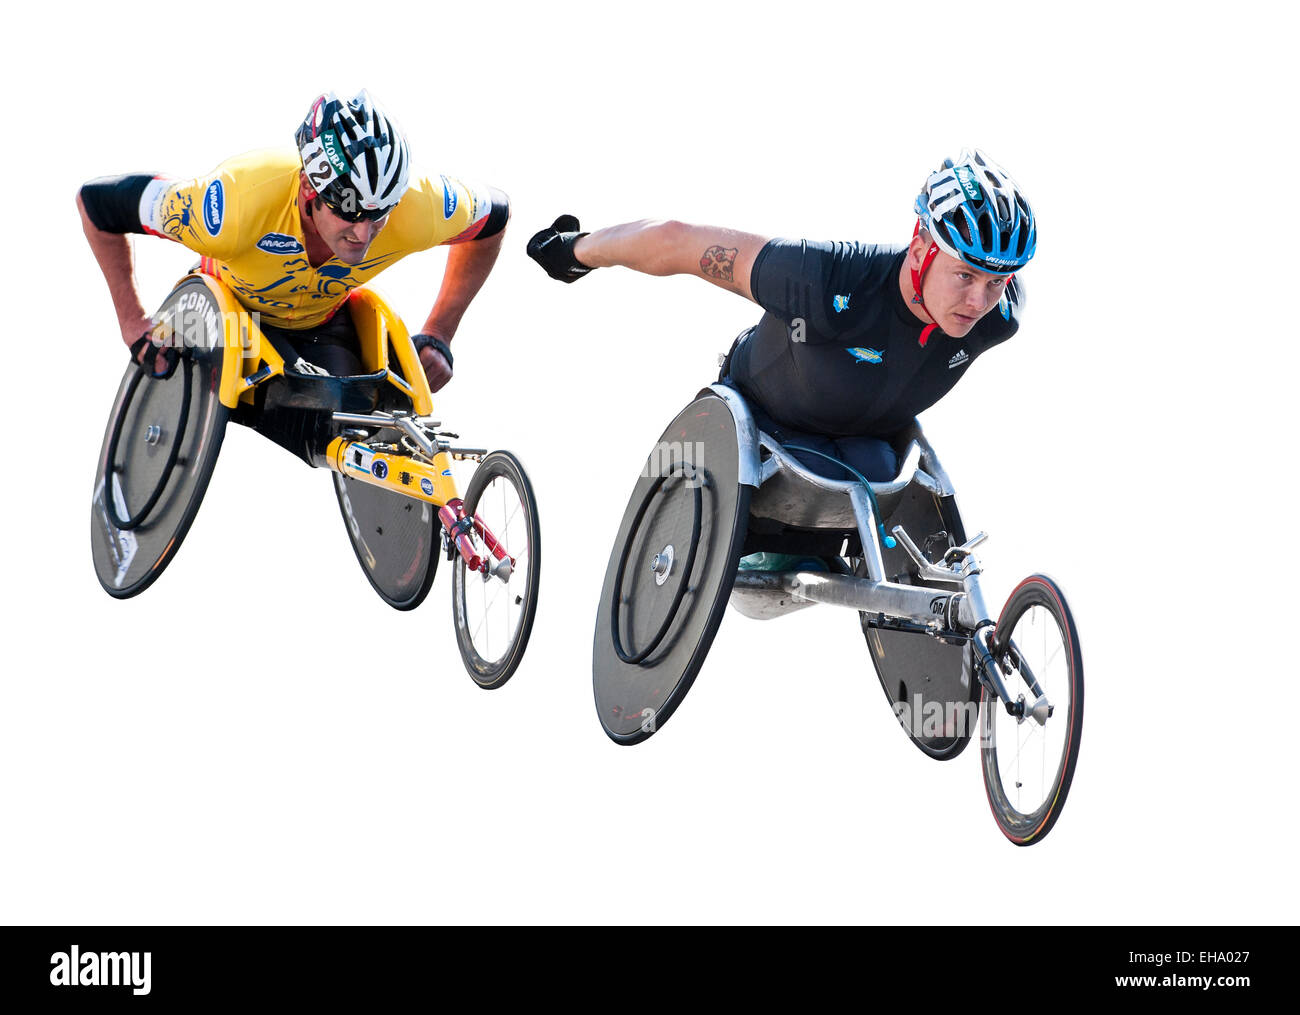 Disabled athletes taking part in the London marathon wheelchair race on a white background - Stock Image